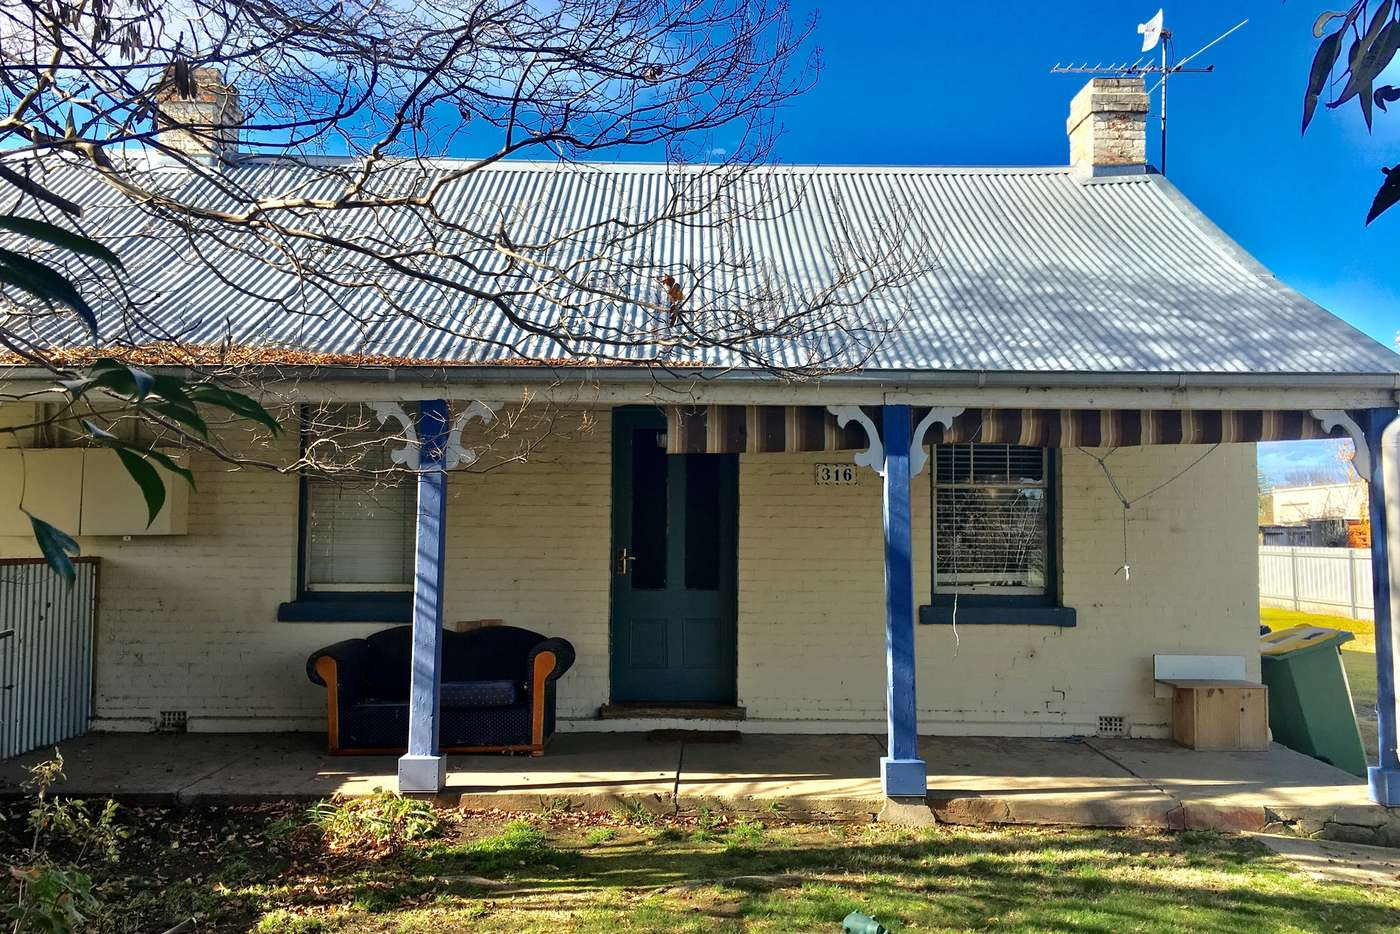 316 Townsend Street, Albury, NSW 2640 For Rent - Homely